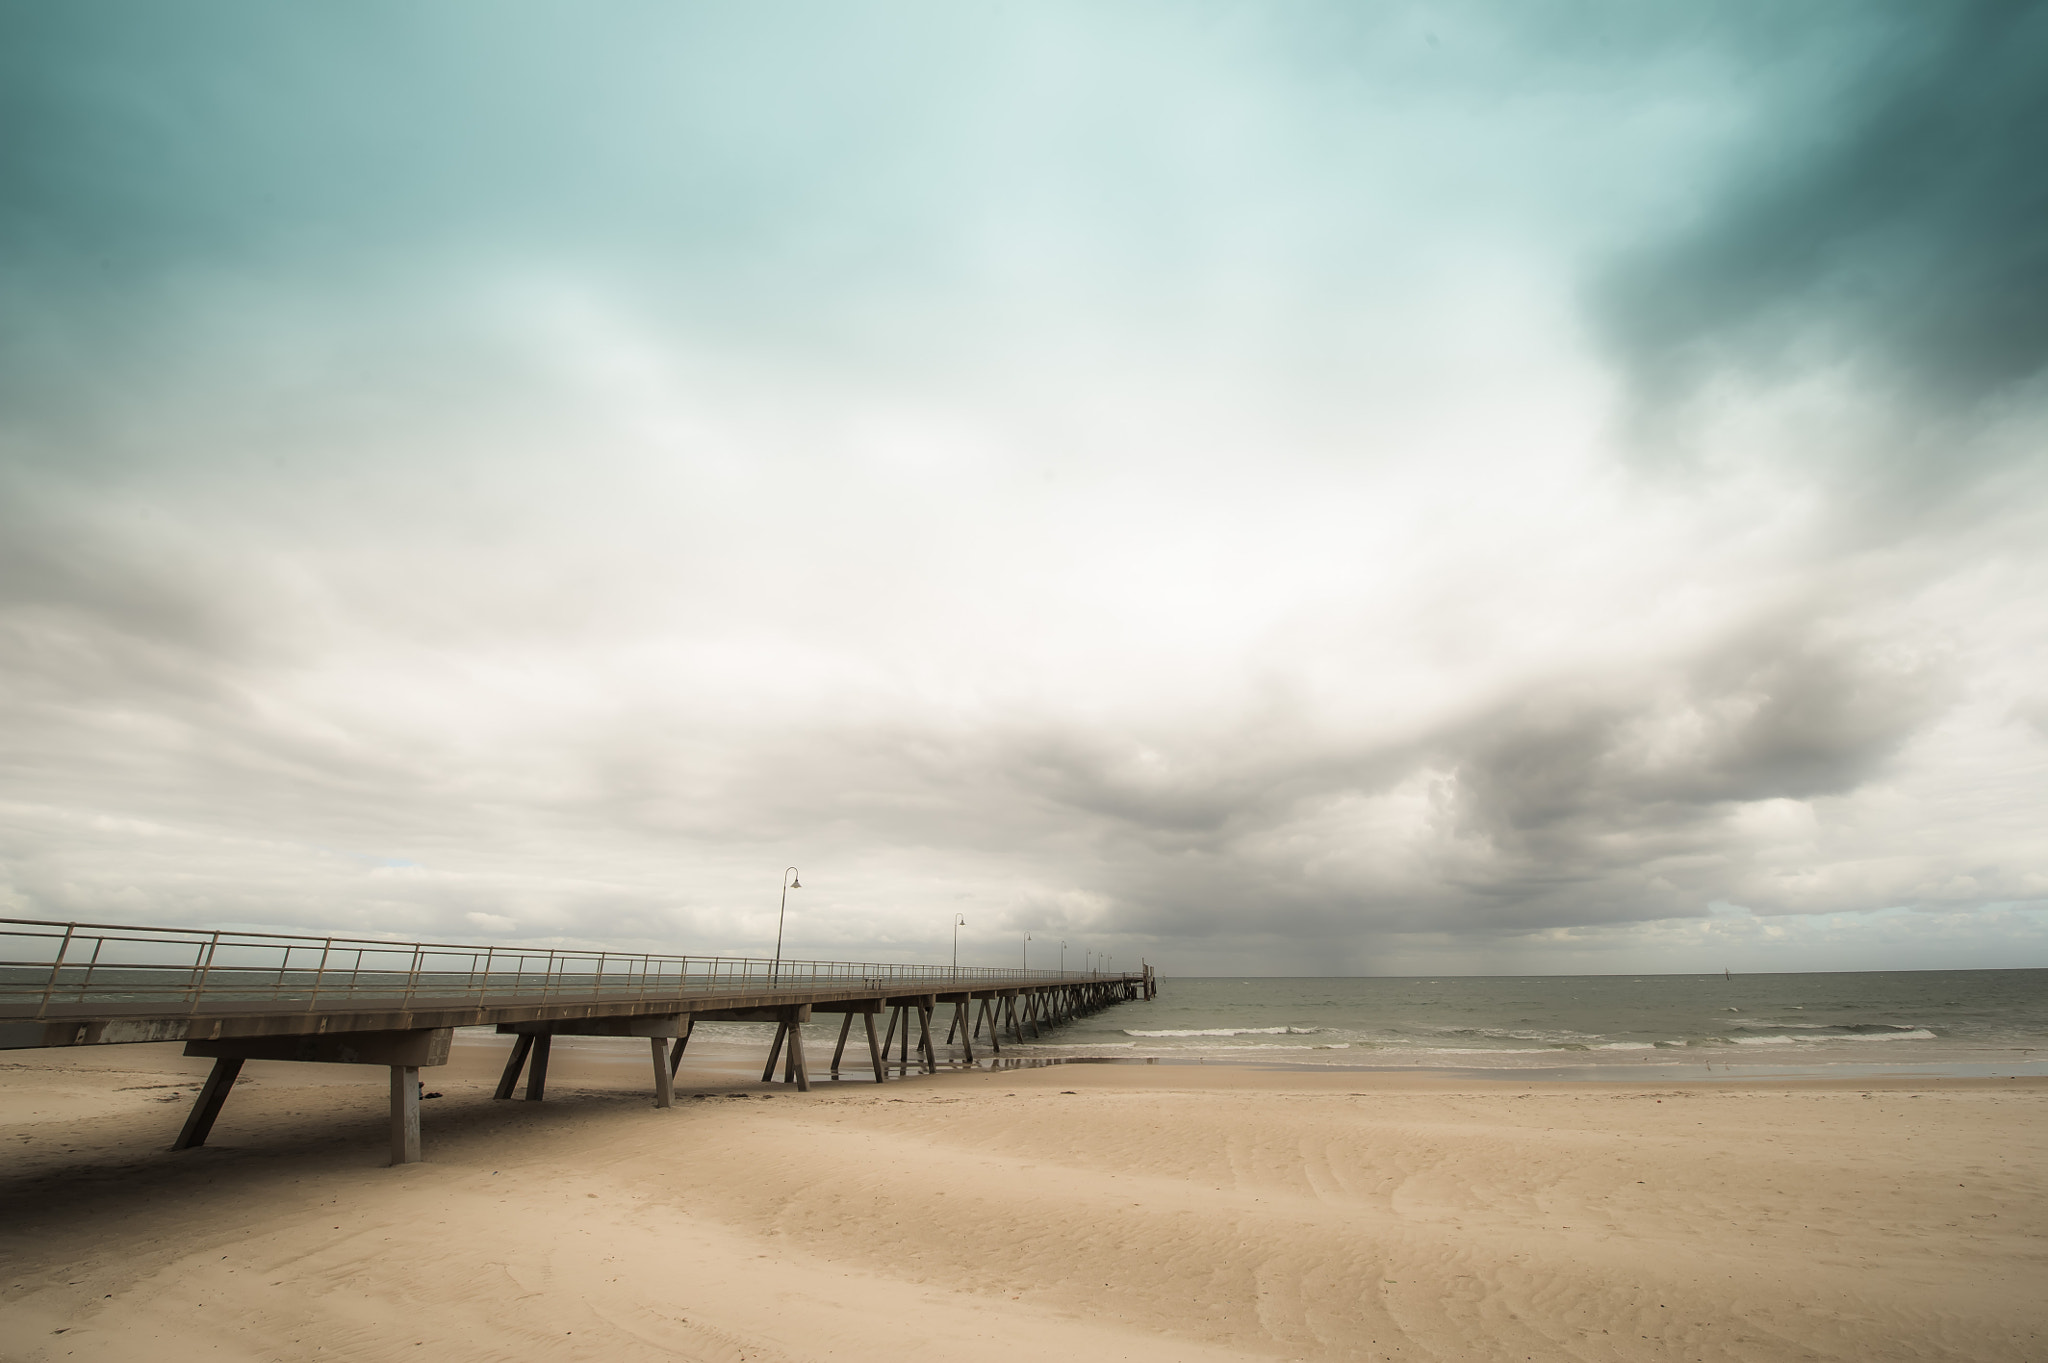 Photograph Glenelg Beach, Australia by Ockert Le Roux on 500px